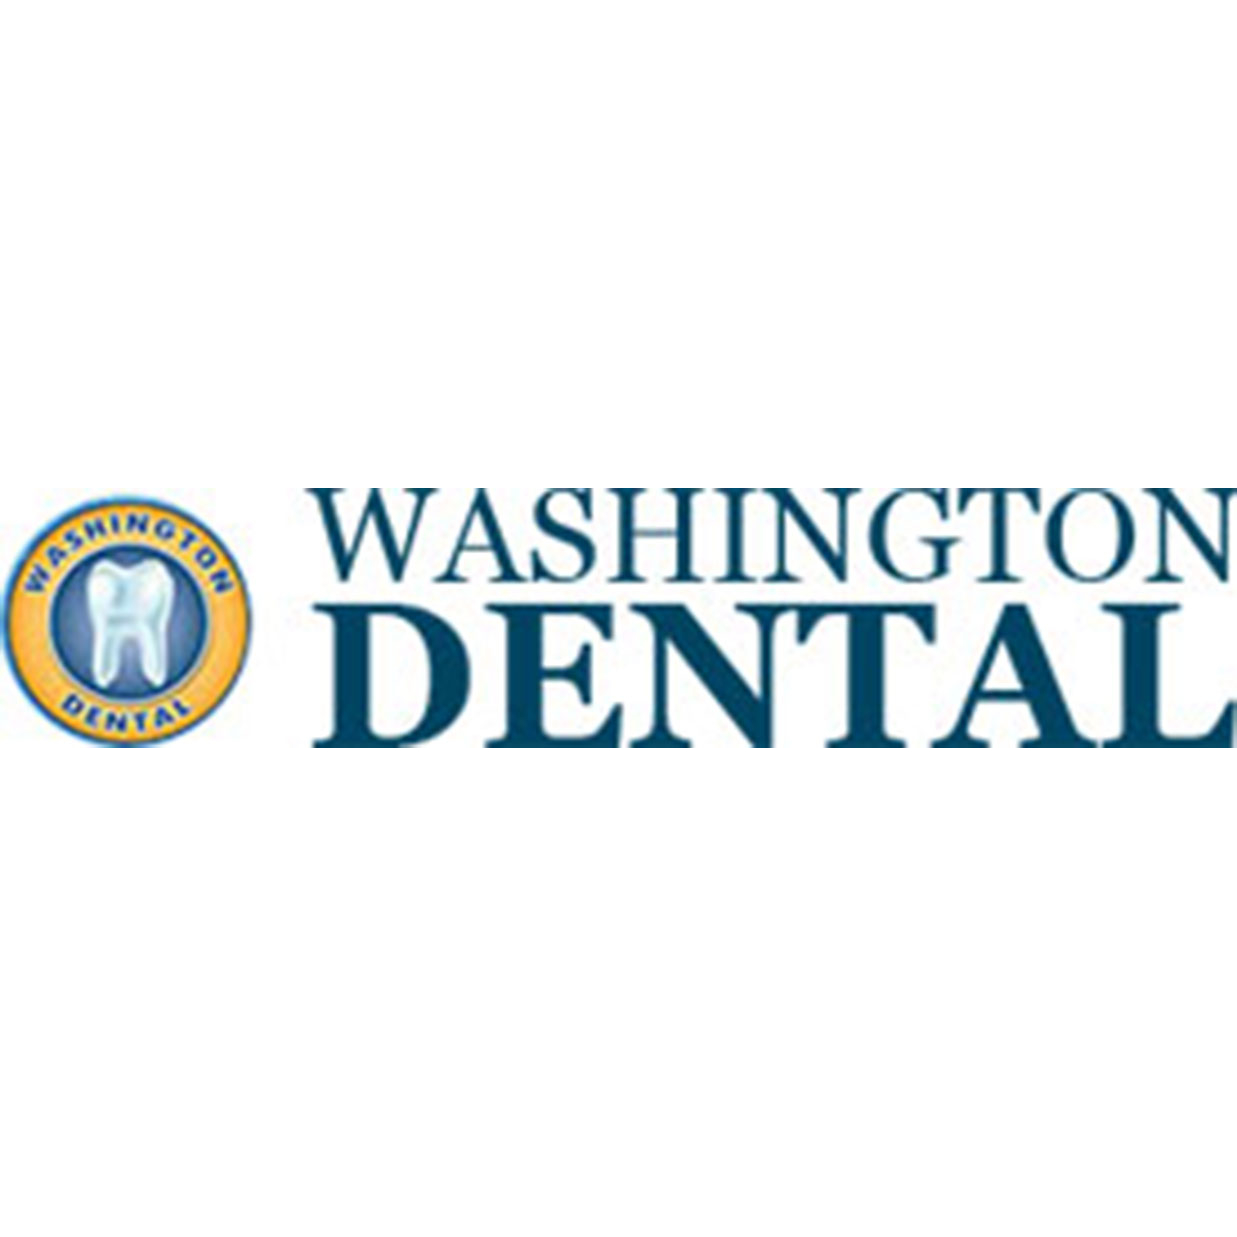 Washington Dental image 2